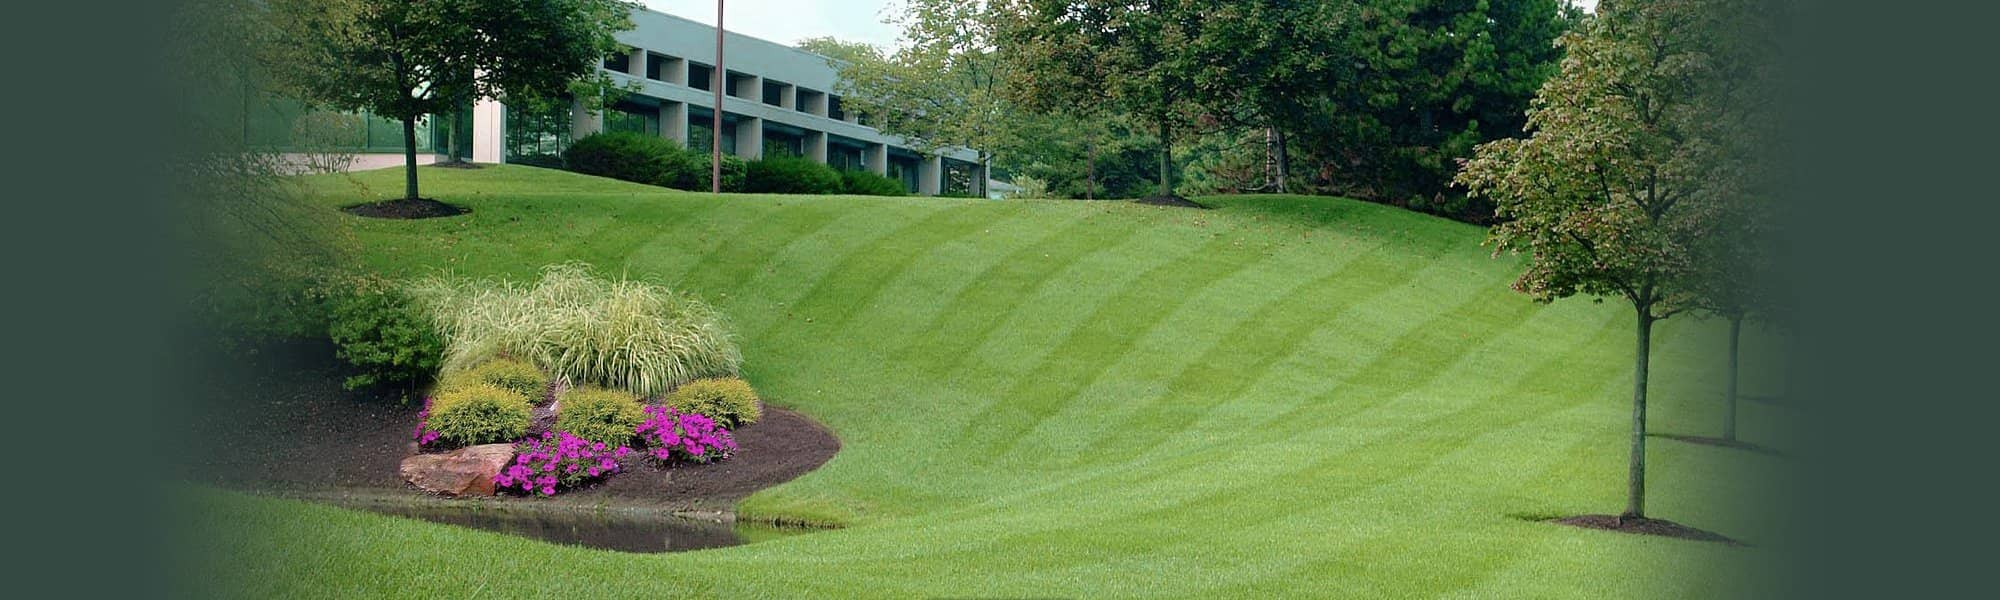 Commercial Turf Management & Grounds Maintenance